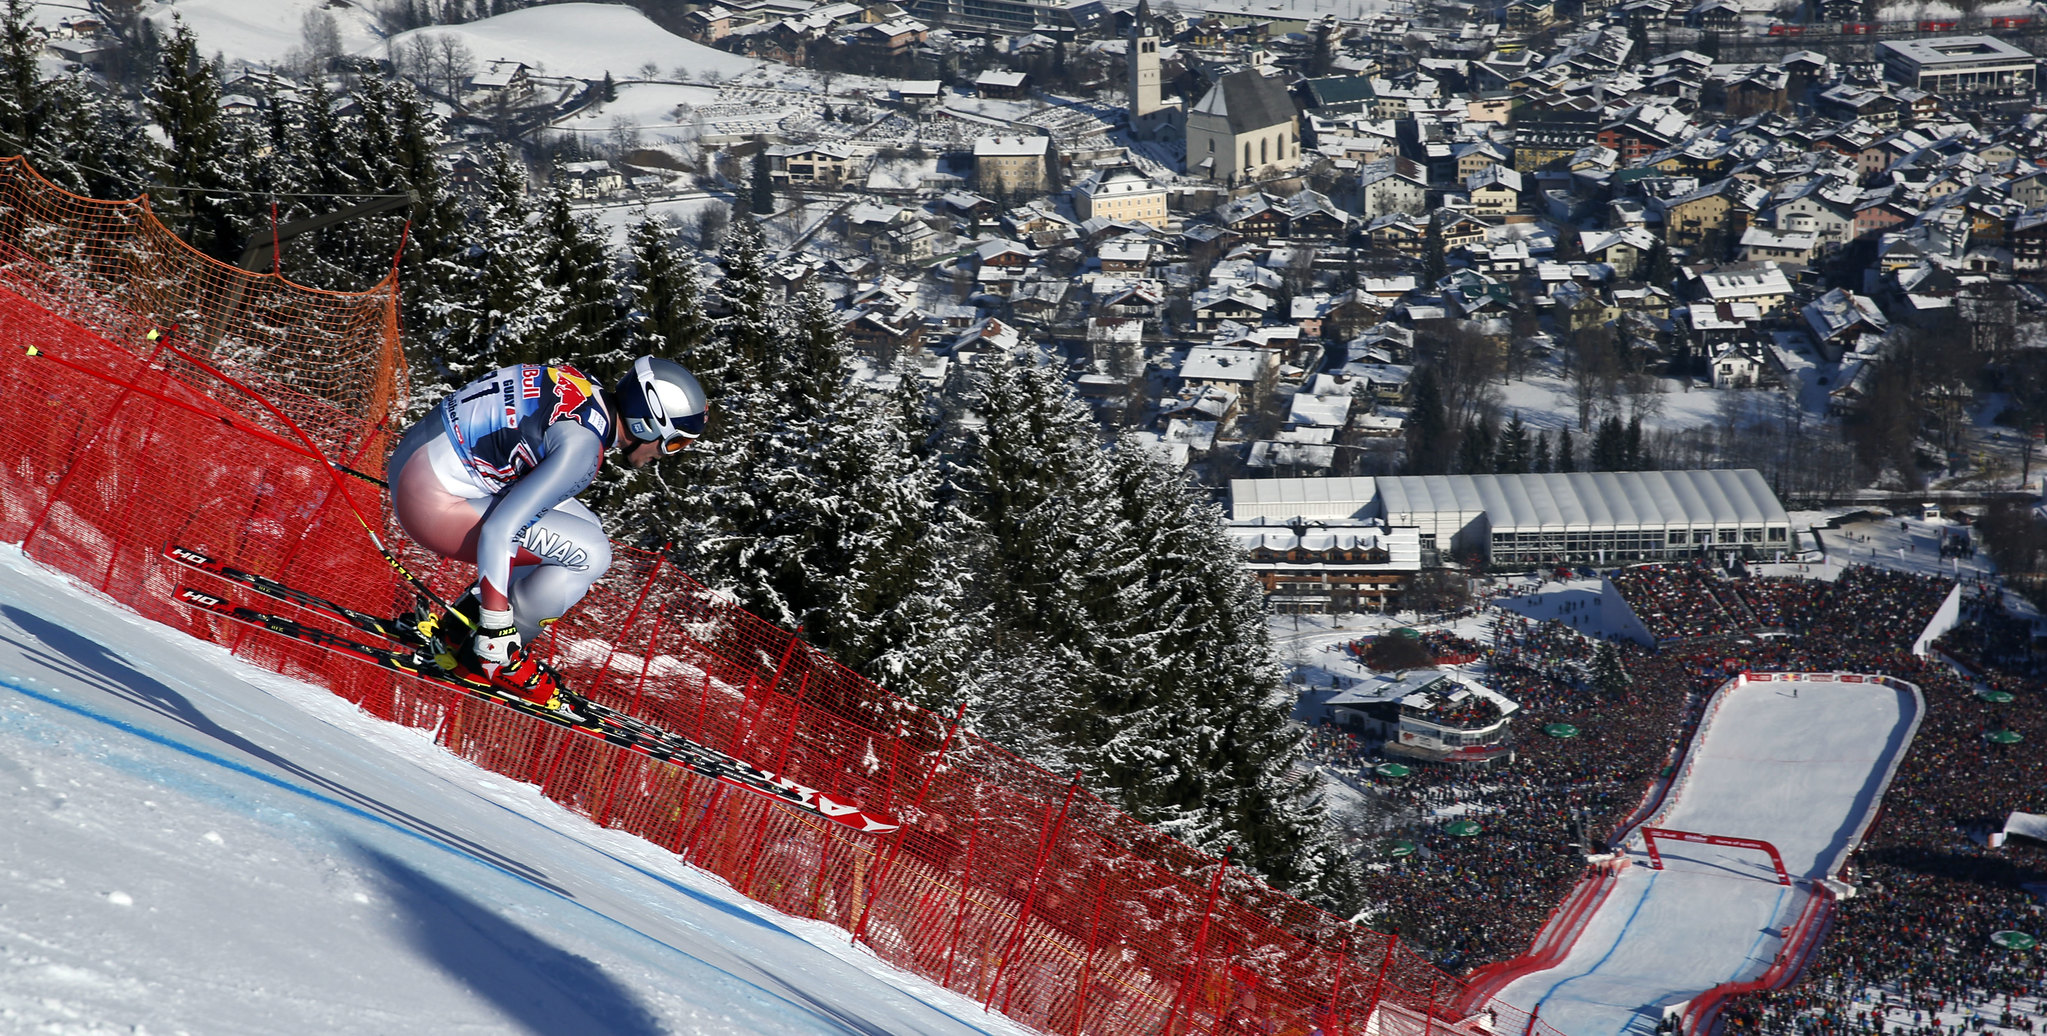 Erik Guay airborne in the Kitzbühel downhill.